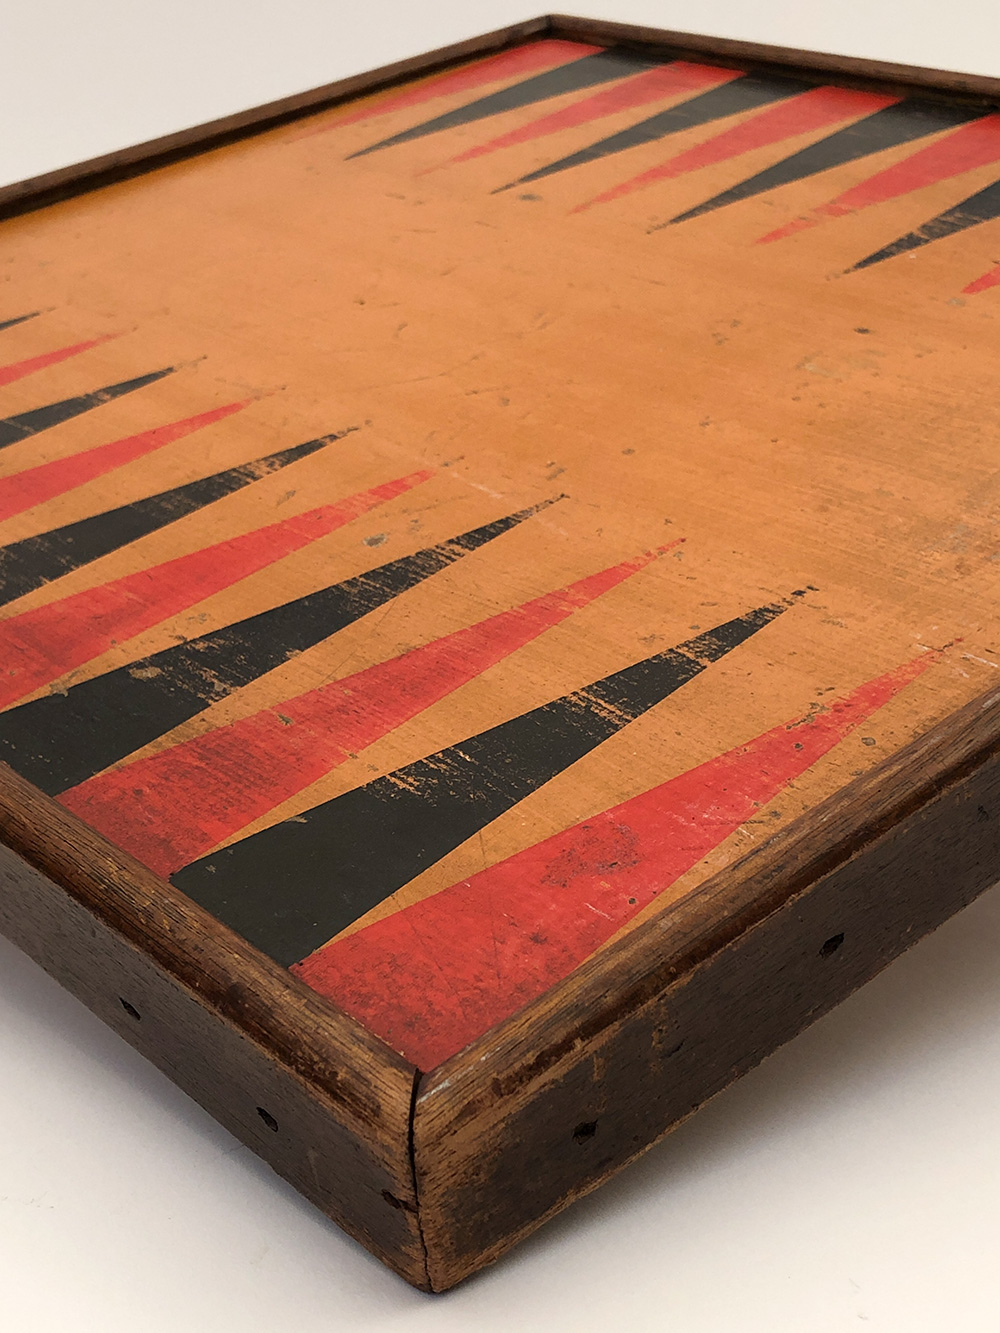 19th century paint decorated wooden checkers gameboard